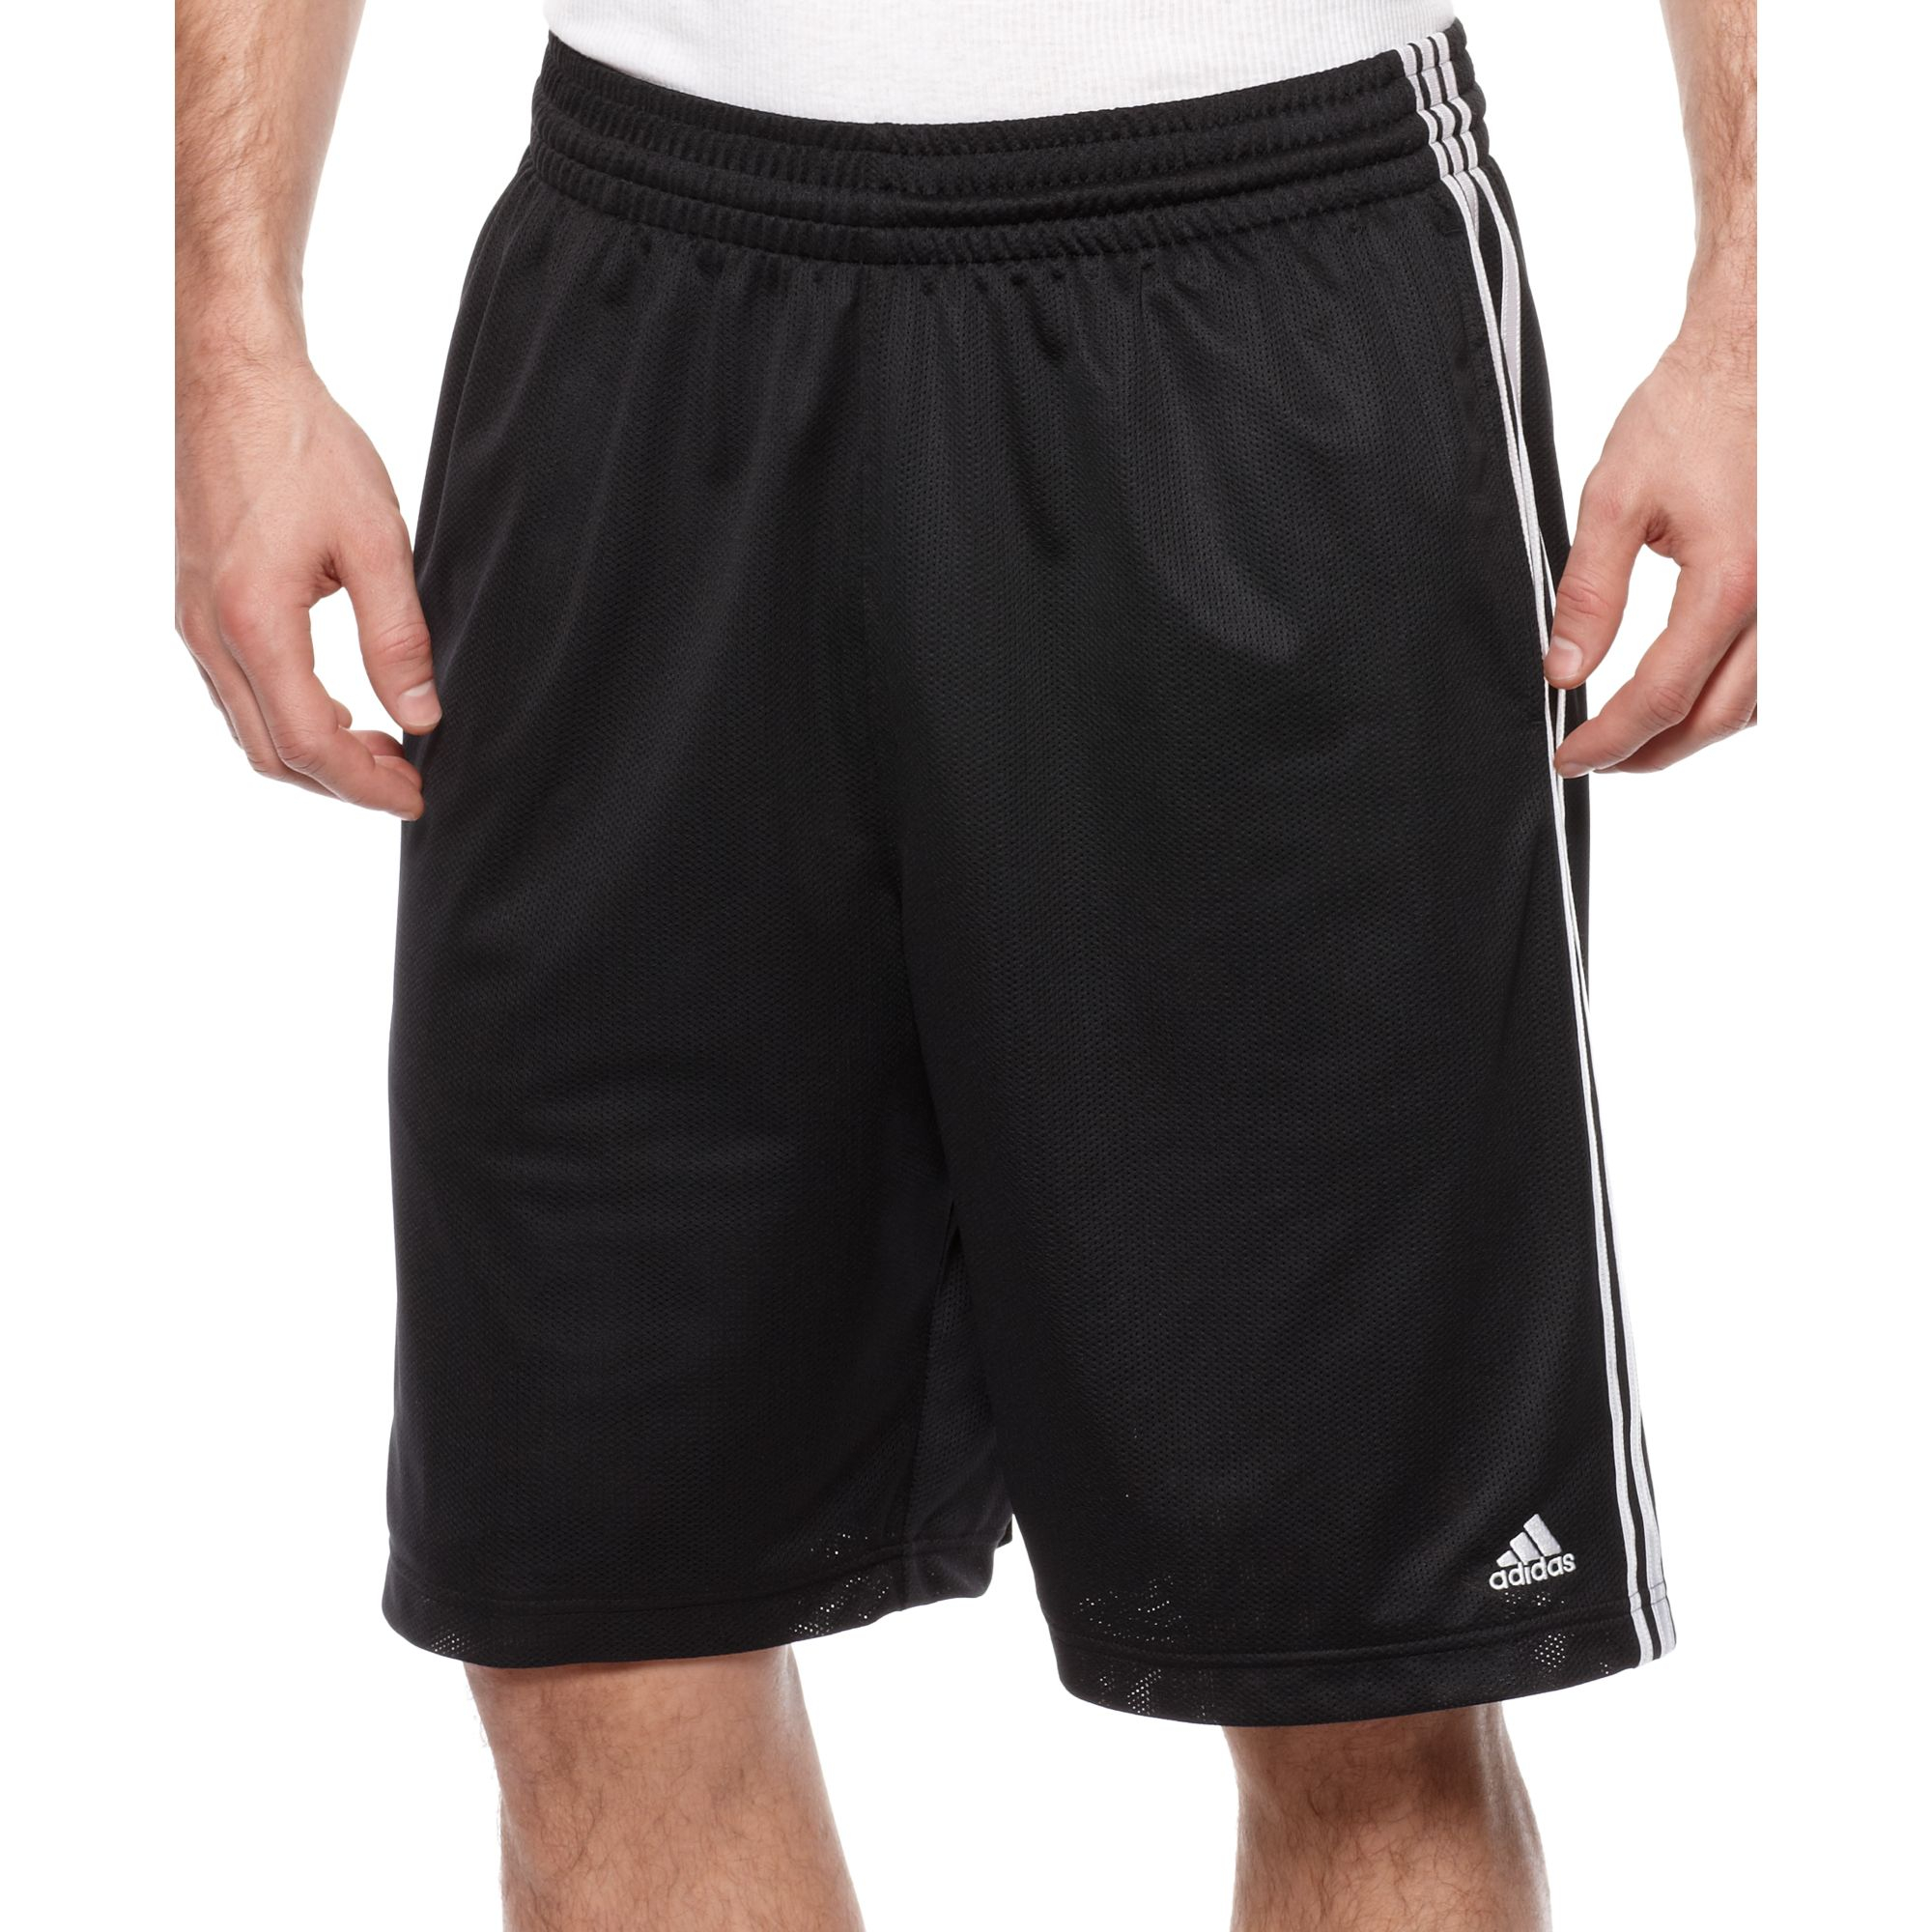 adidas basketball shorts pattern